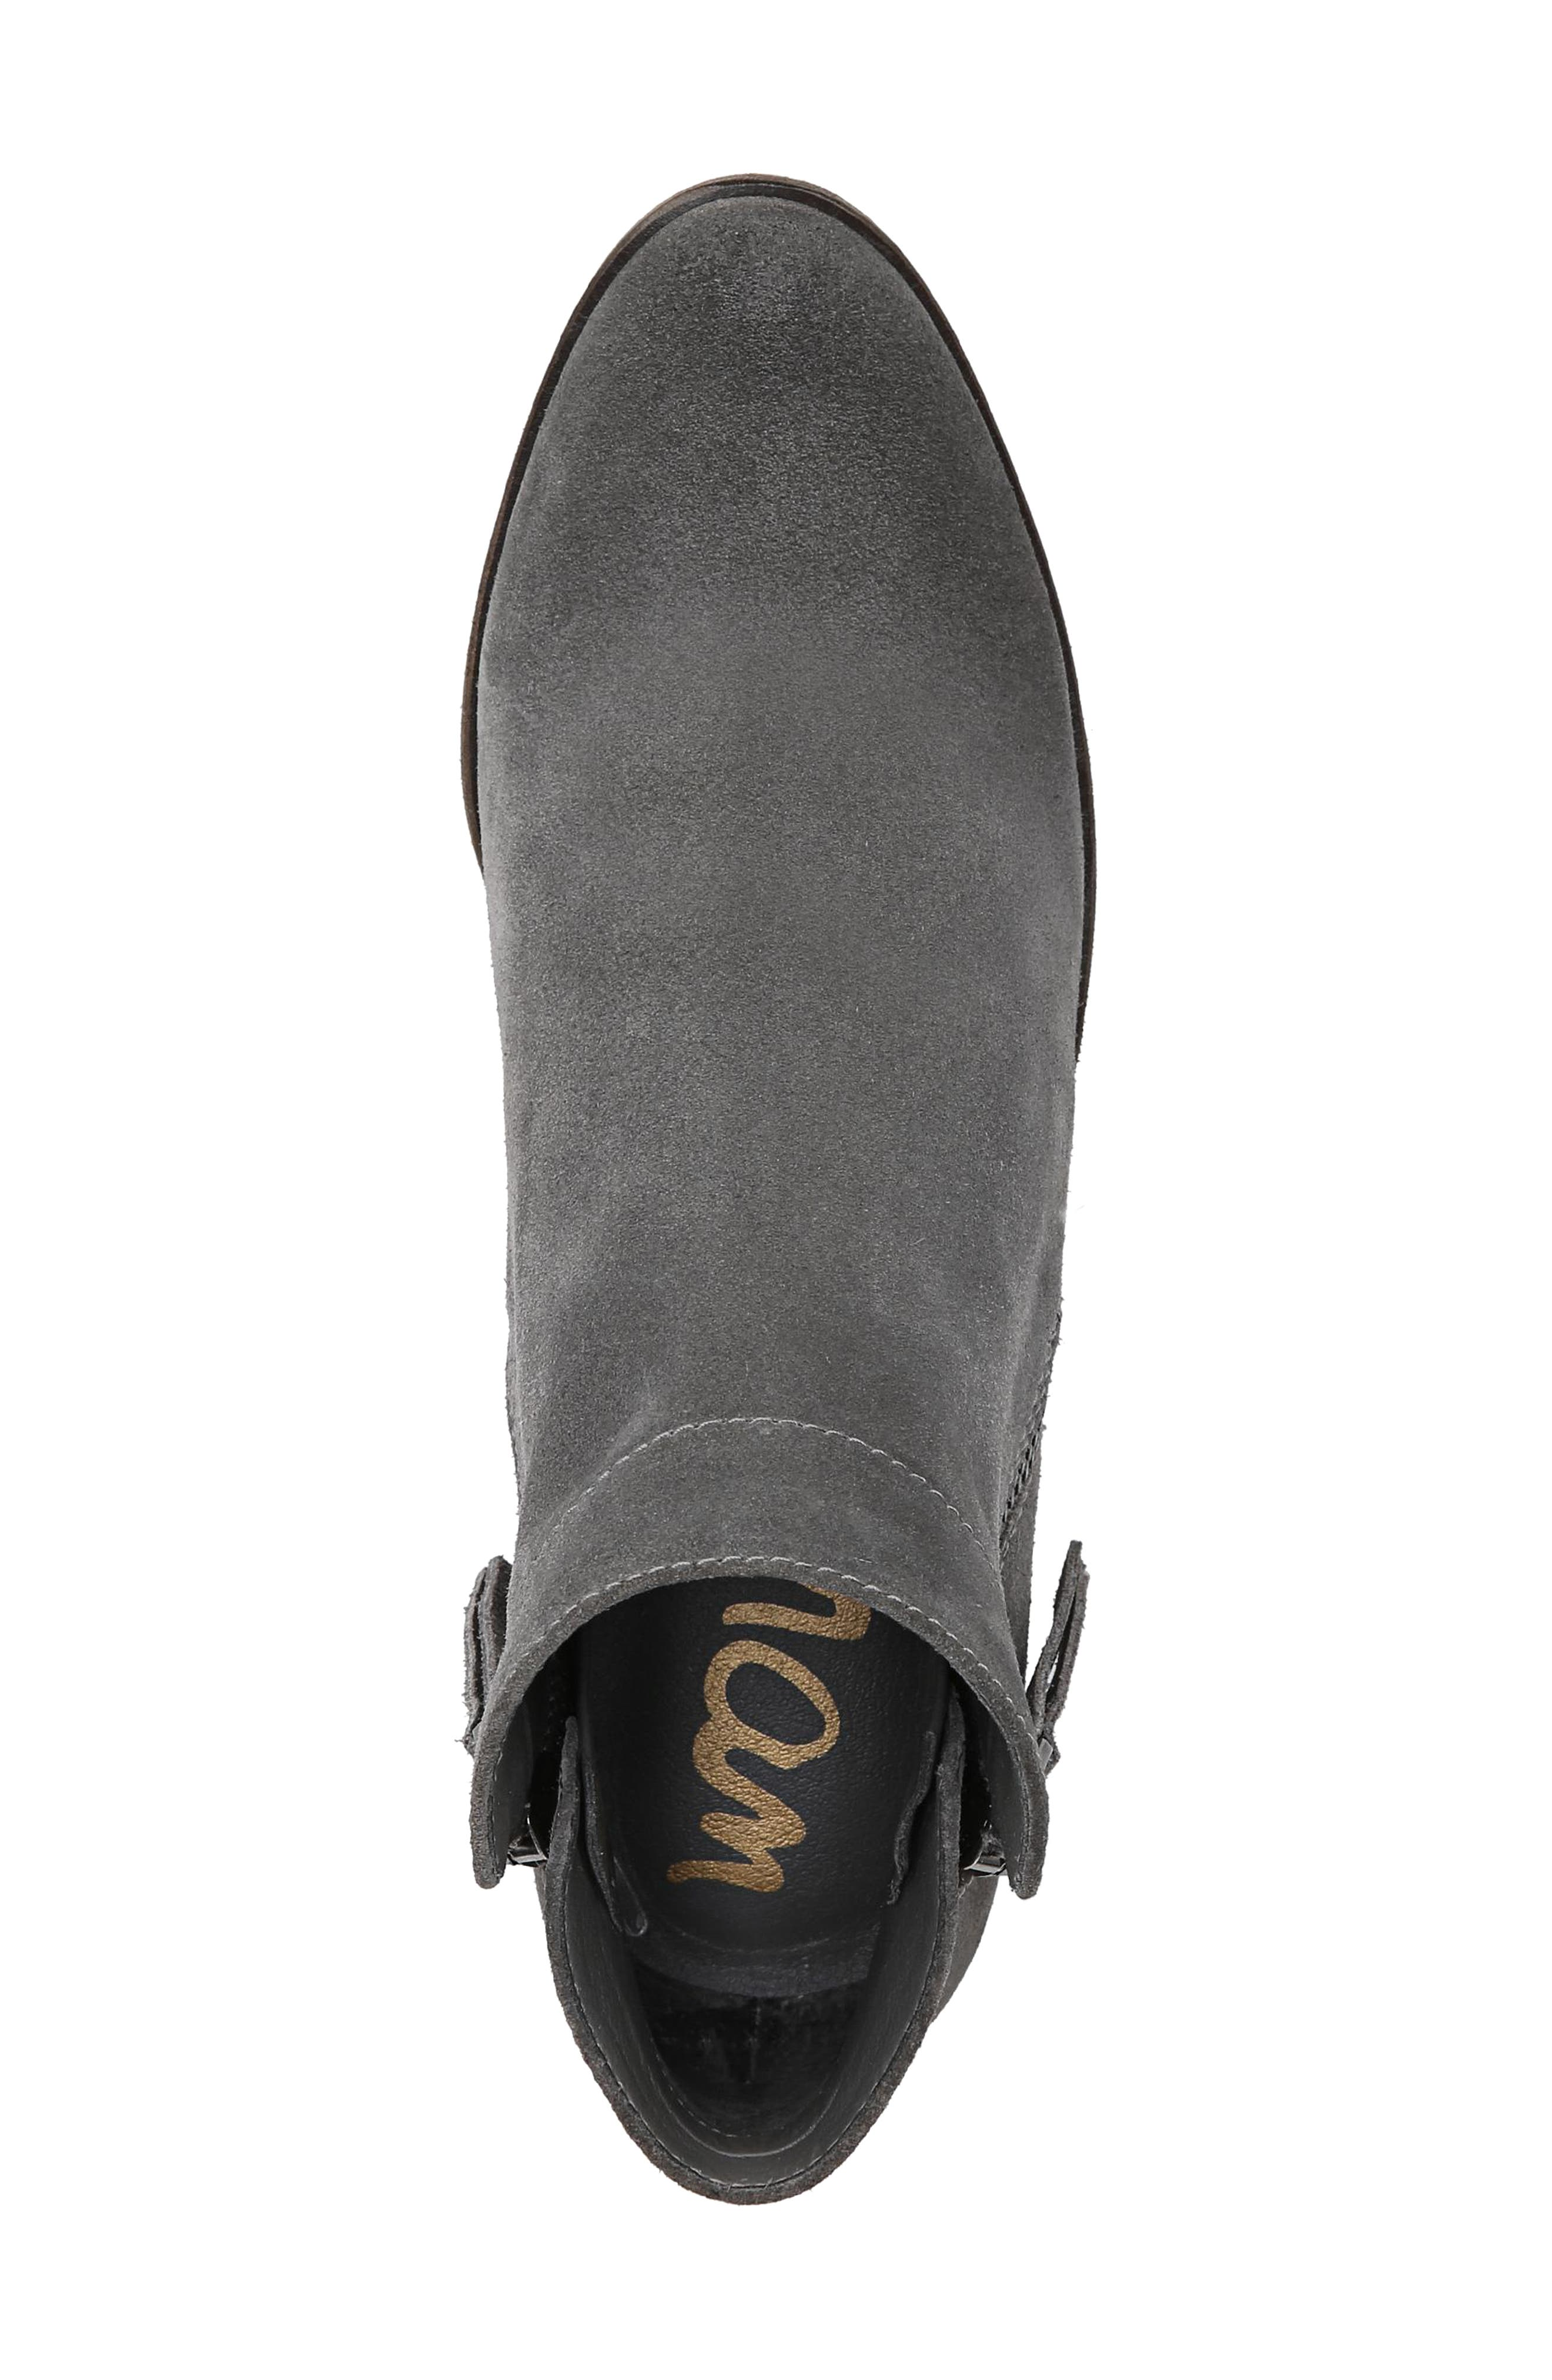 Packer Bootie,                             Alternate thumbnail 5, color,                             STEEL GREY SUEDE LEATHER